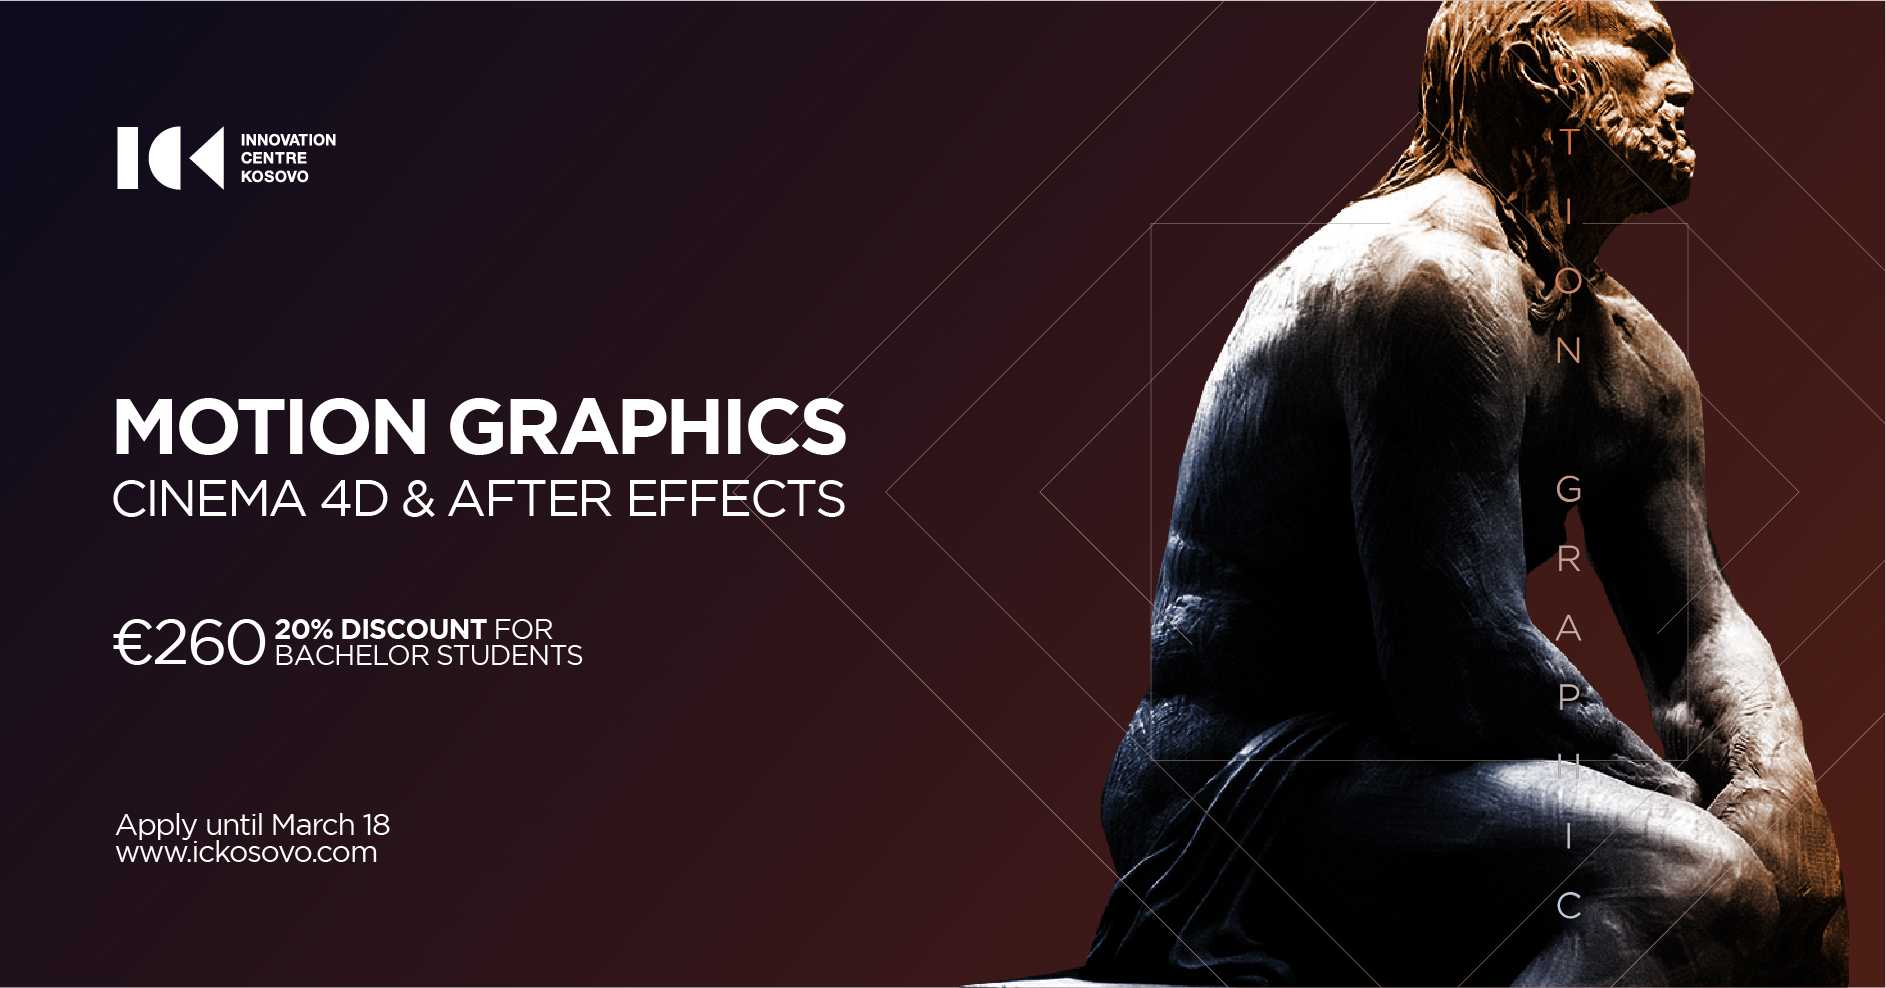 Motion Graphics with Cinema 4D and After Effects Training